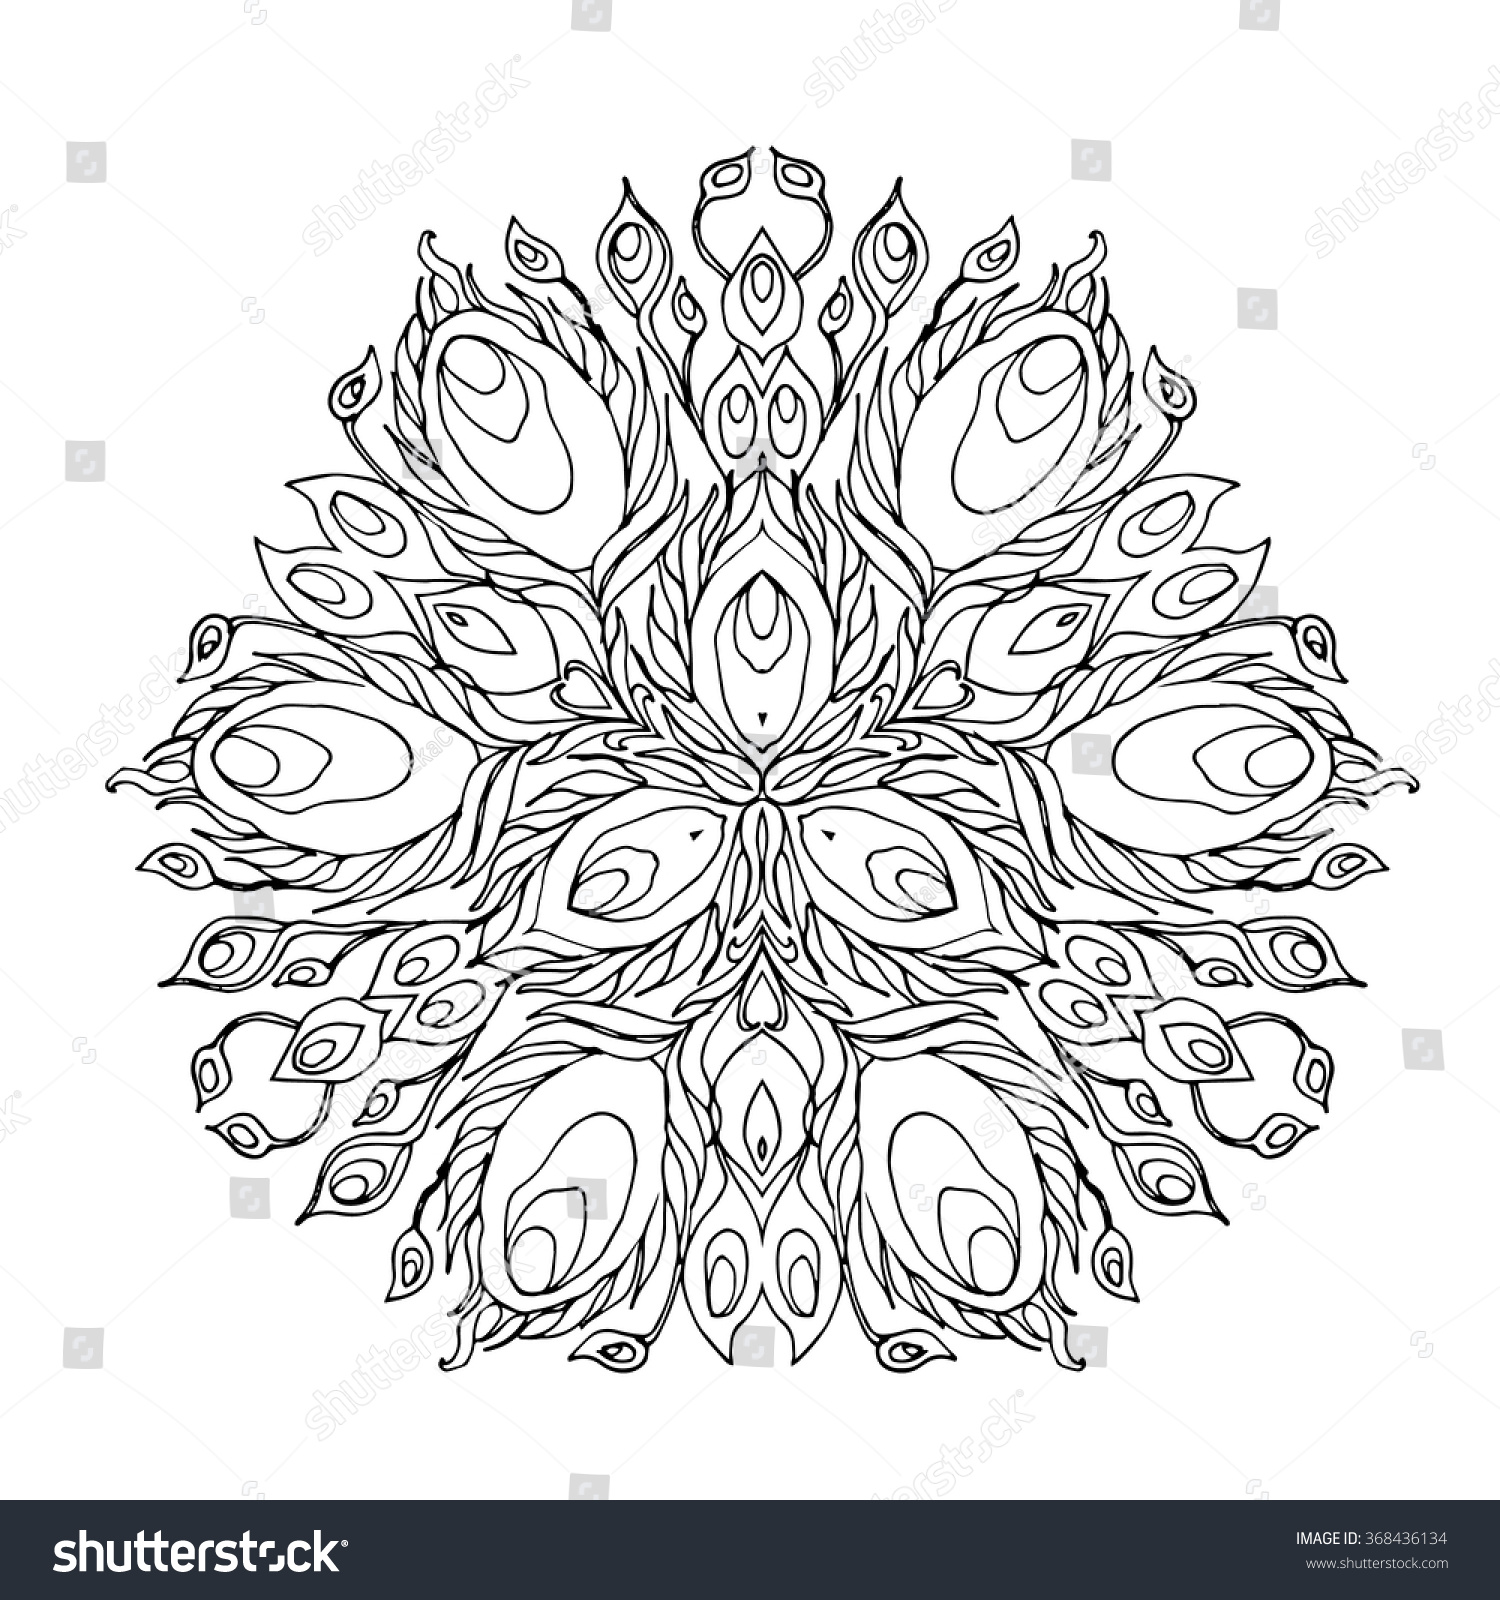 Abstract Mandala Design Kaleidoscope Shape With Peacock Feather Arrangement Hand Drawn Vector For Coloring Book